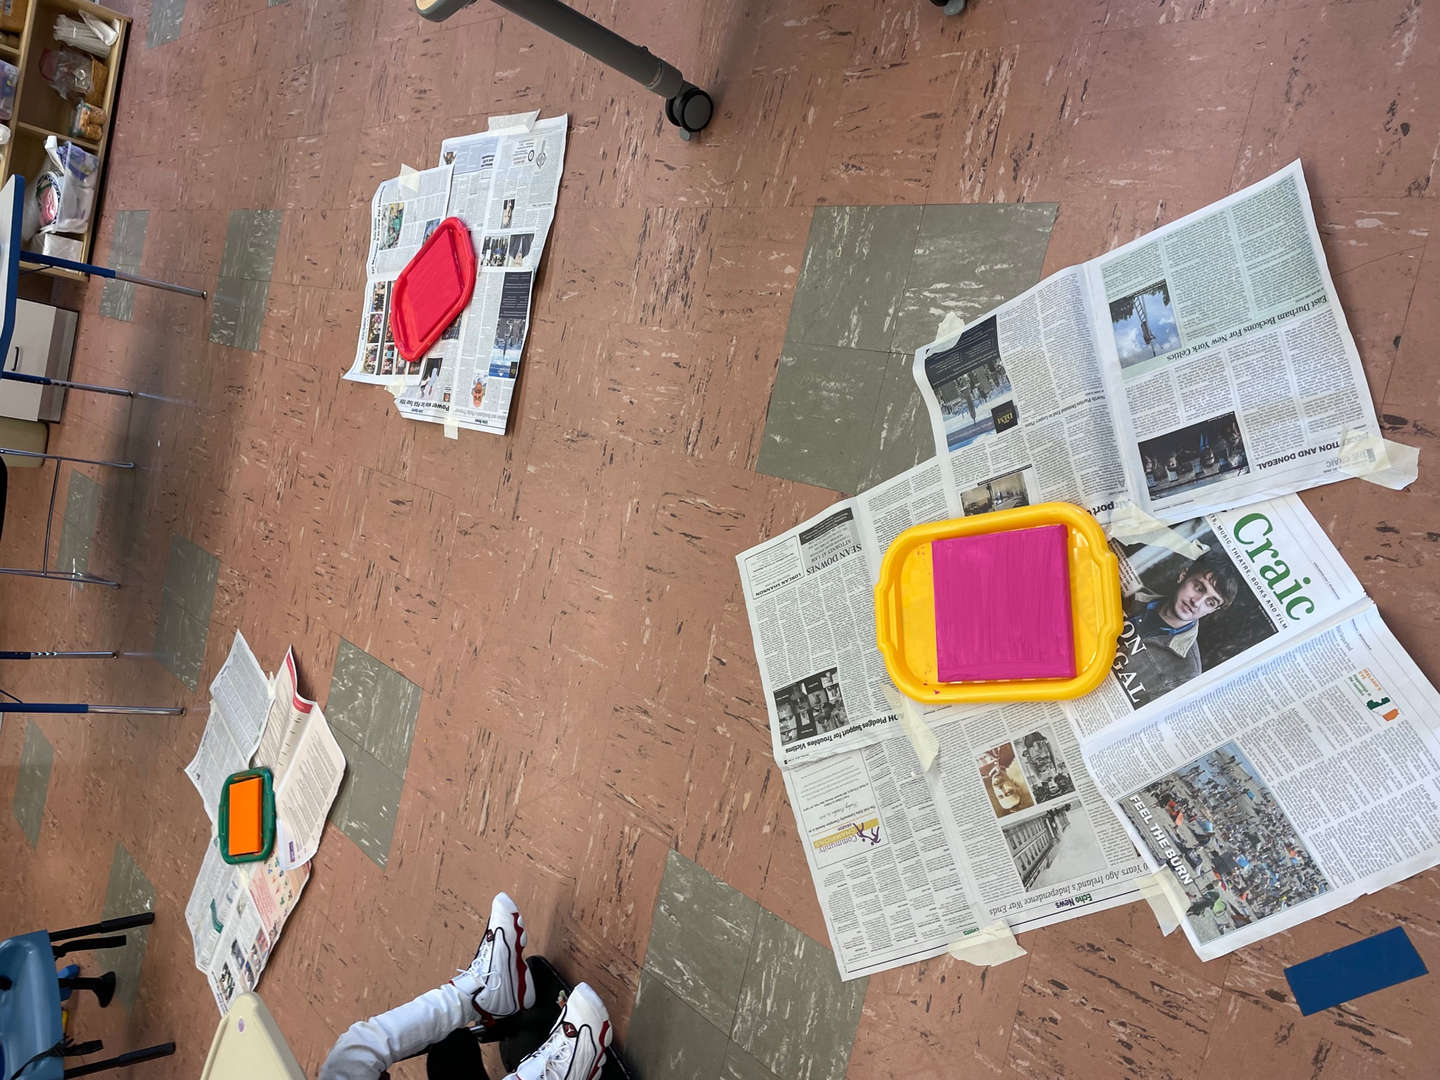 the artwork in progress laid out on newspapers to dry